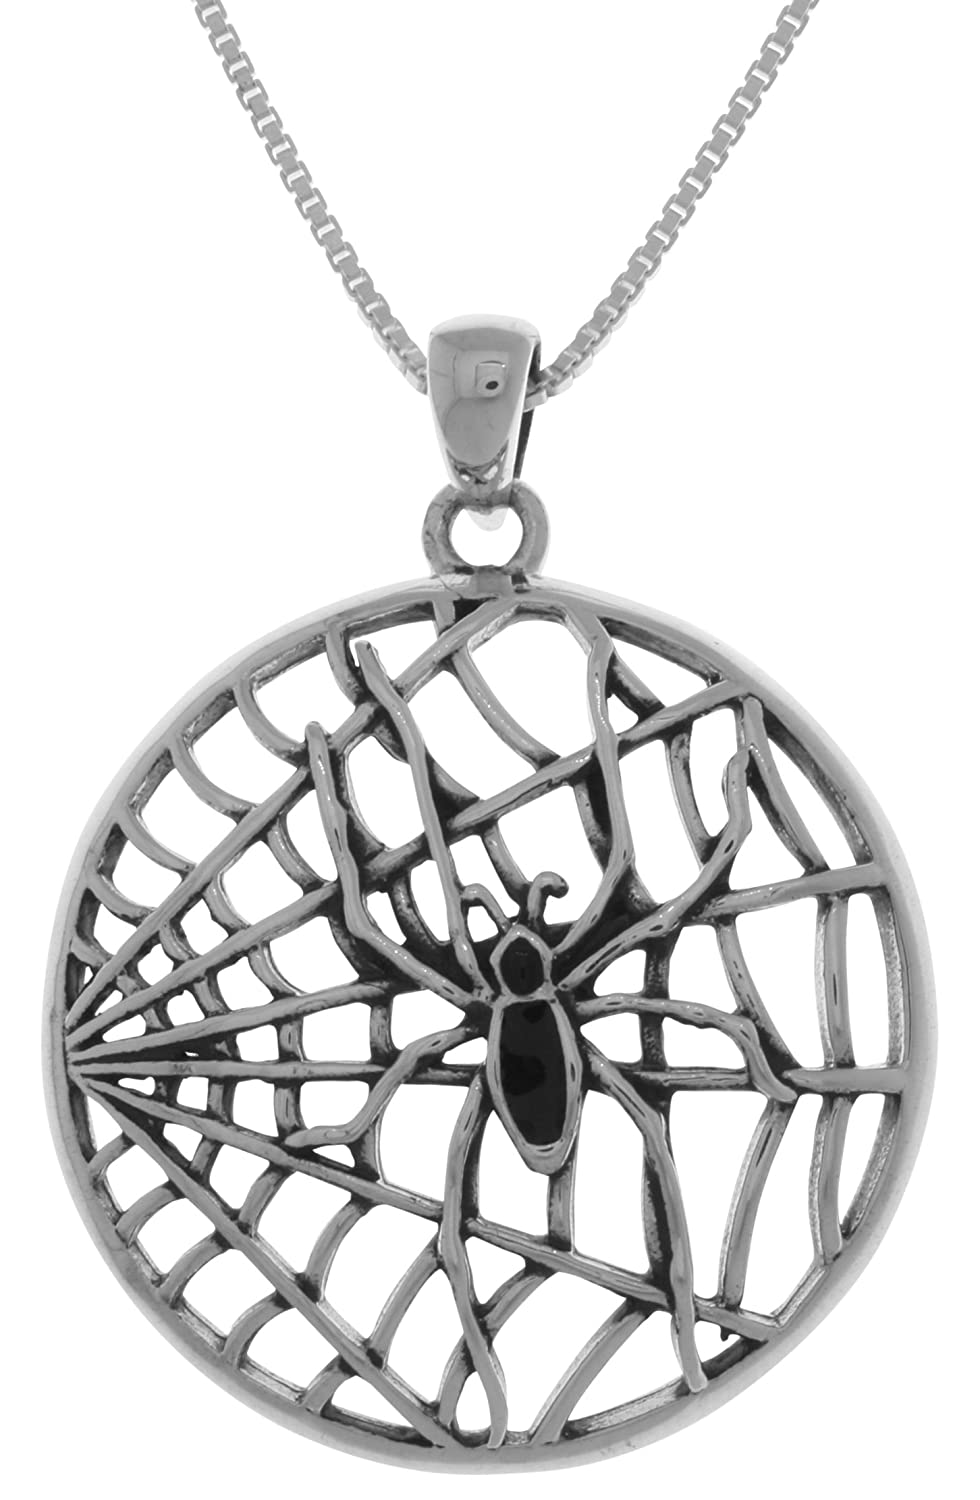 Jewelry Trends Spider Web Insect Bug Sterling Silver Pendant Necklace 18